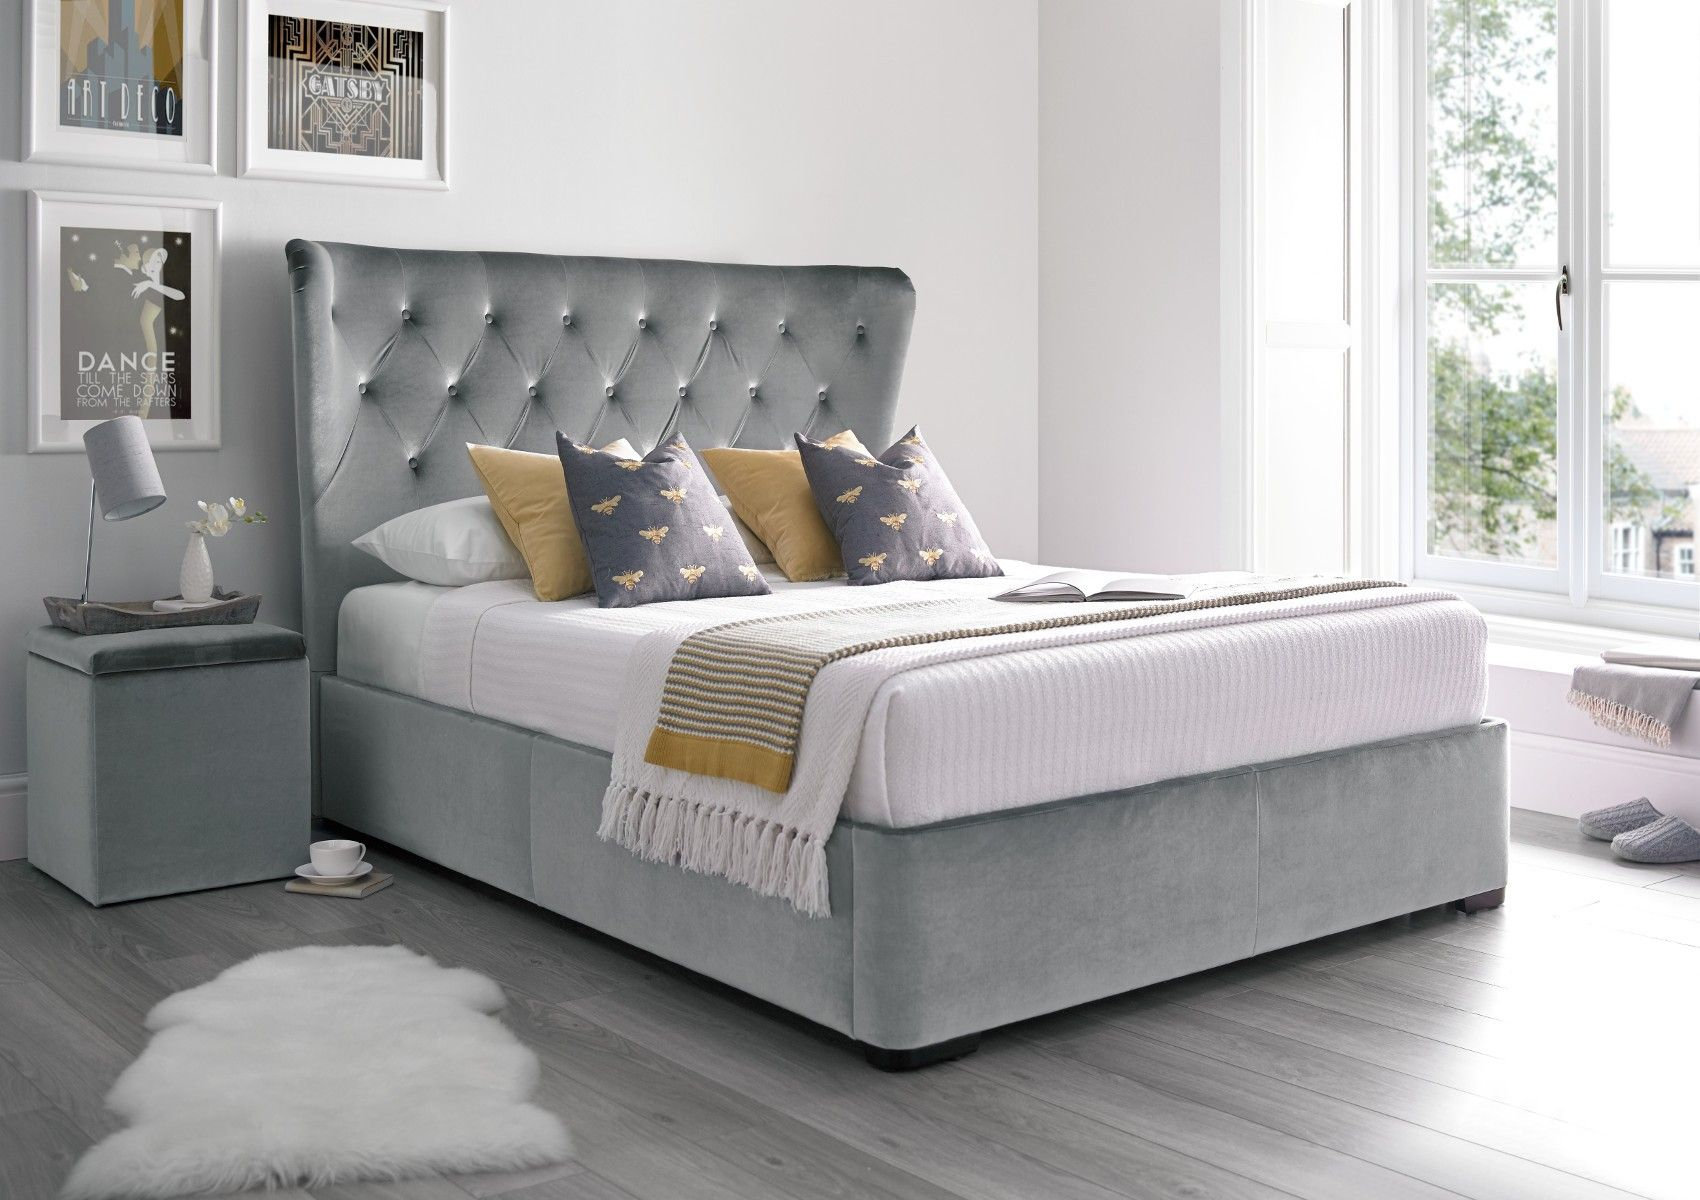 Savannah Upholstered Winged Ottoman Storage Bed - Velvet Grey ...